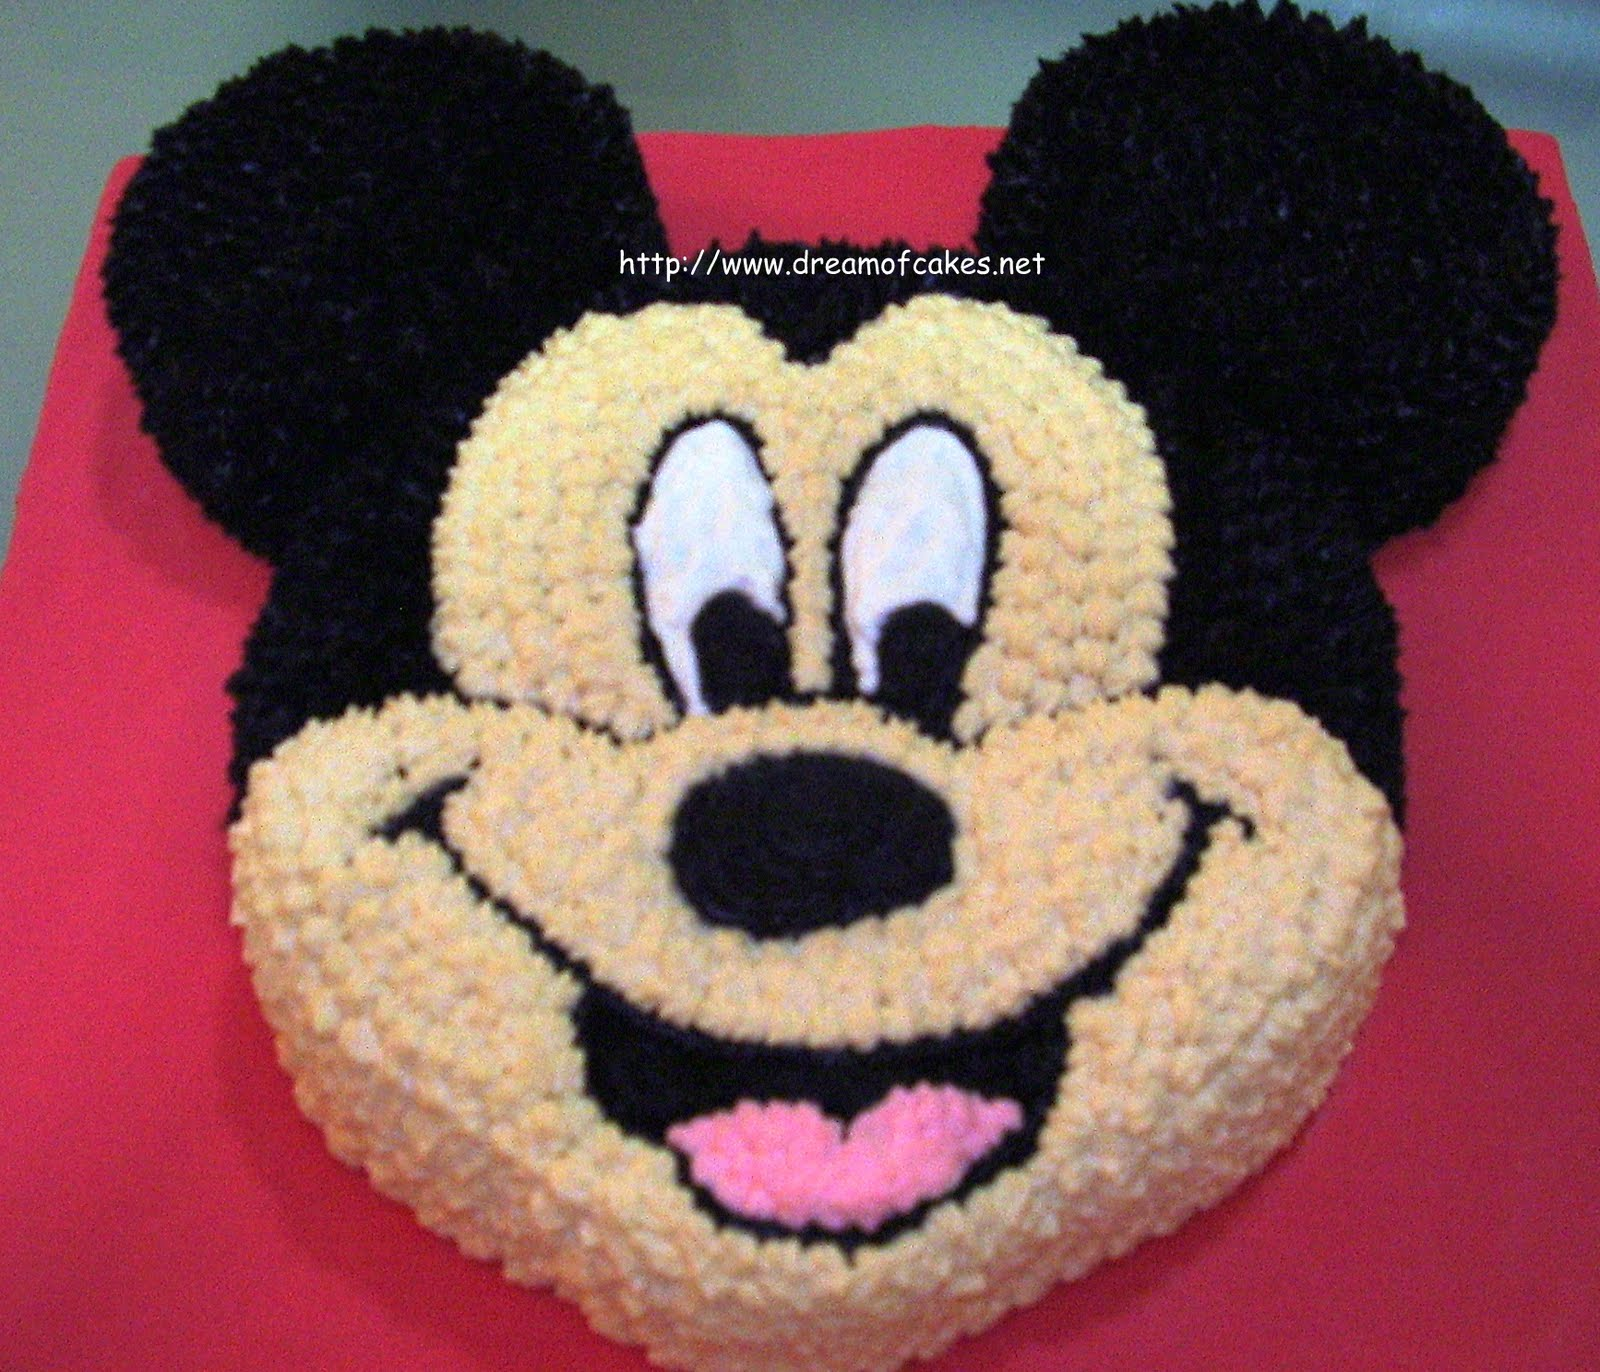 mickeymouse cake